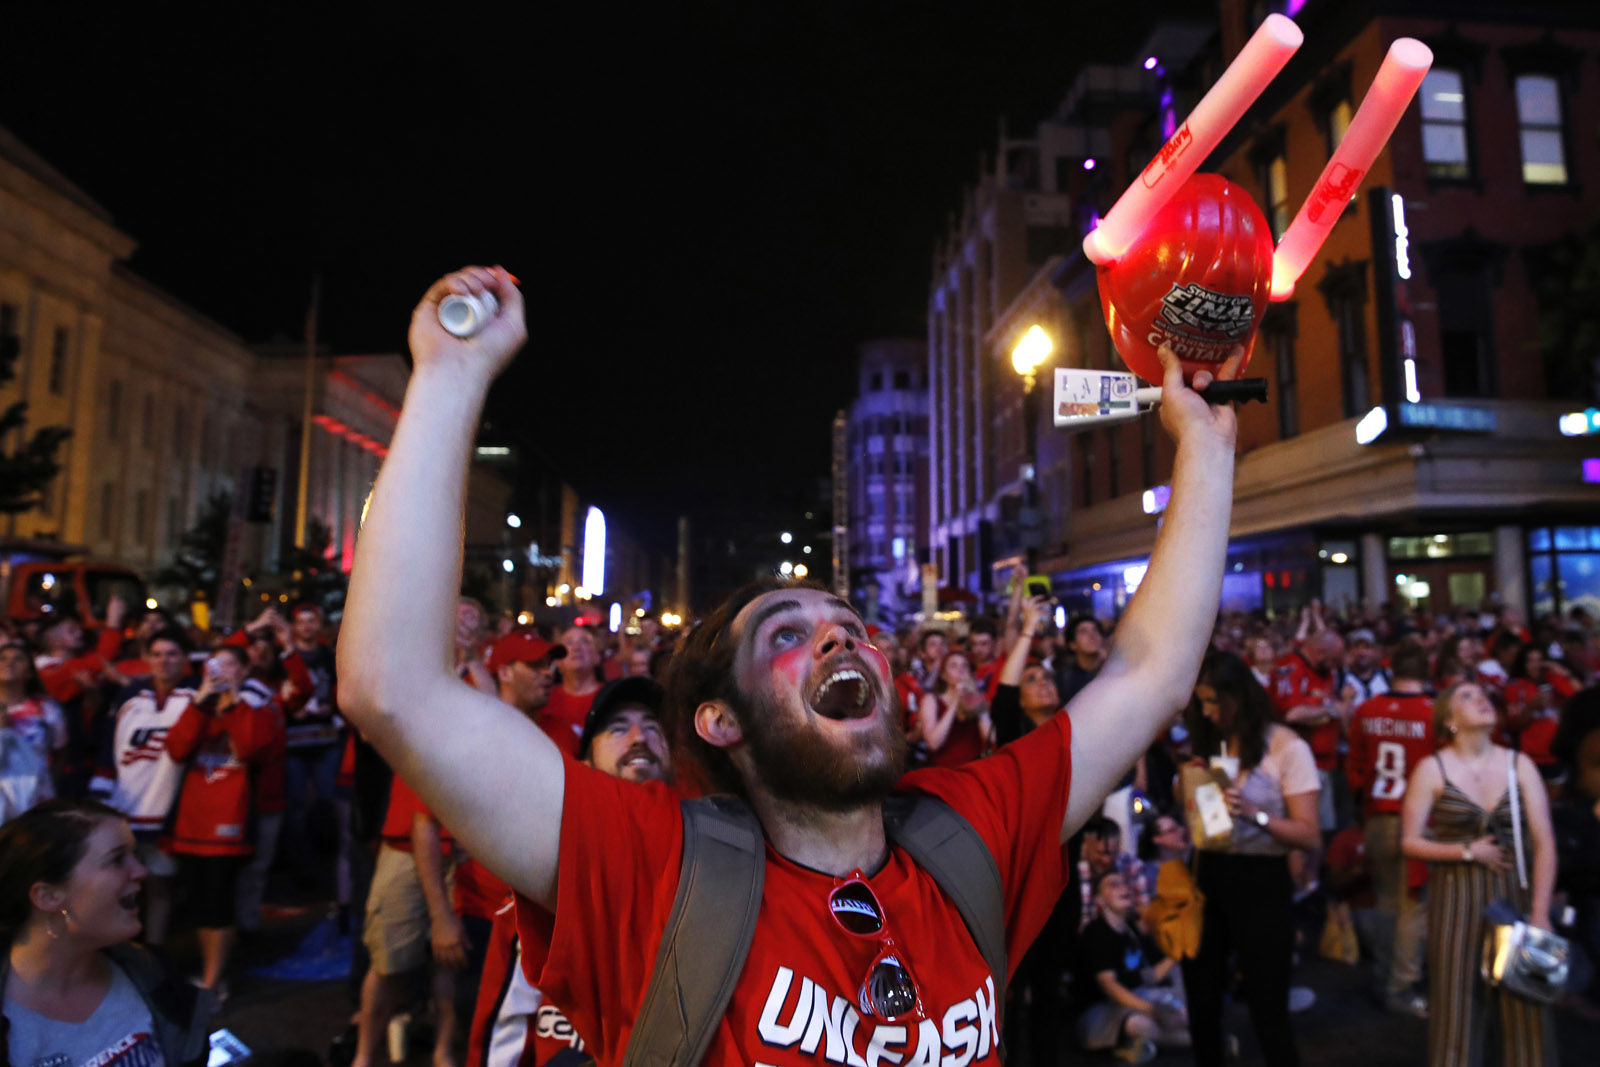 """Brian """"Buzz"""" Ganow, 22, of Manassas, Va., celebrates a goal in the second period of Game 3 of the NHL hockey Stanley Cup Final between the Washington Capitals and the Vegas Golden Knights, Saturday, June 2, 2018, in Washington. Fans could watch the game on a large screen outside the venue. """"I've lived here my whole life,"""" says Ganow, """"so I've been waiting for this for a long time."""" (AP Photo/Jacquelyn Martin)"""